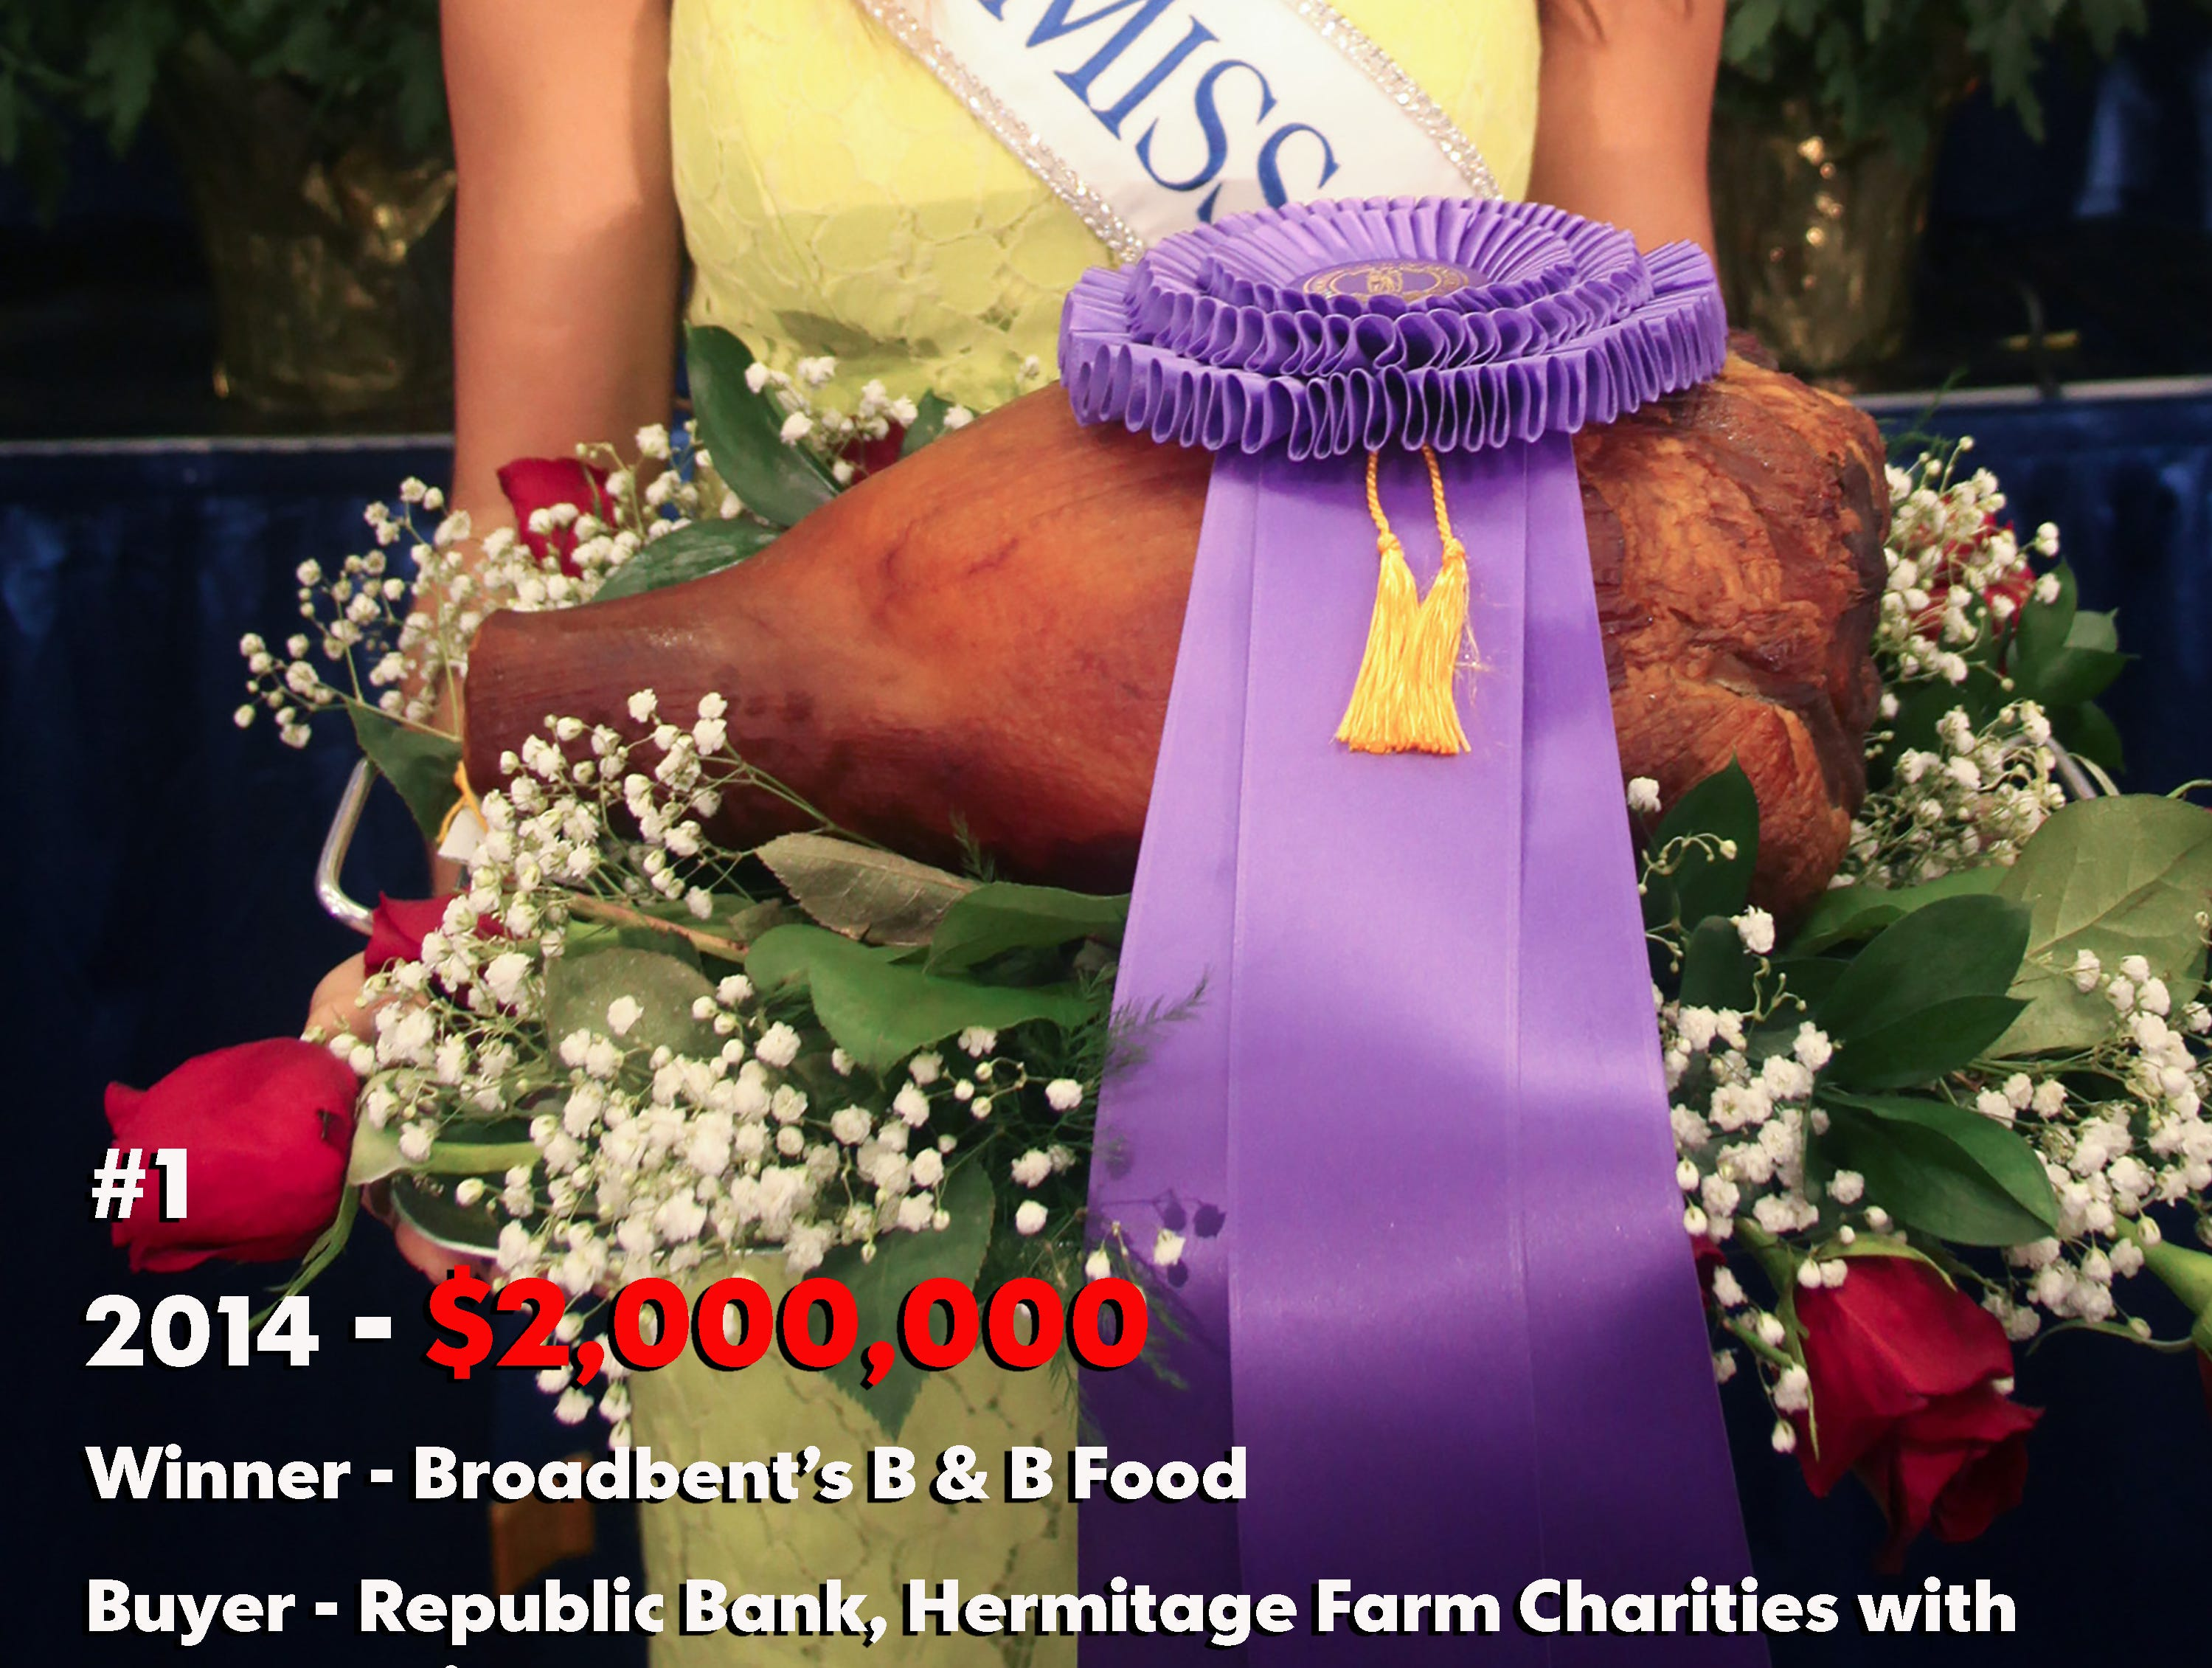 Miss Kentucky Ramsey Chandler shows off the $2 million ham. 2014